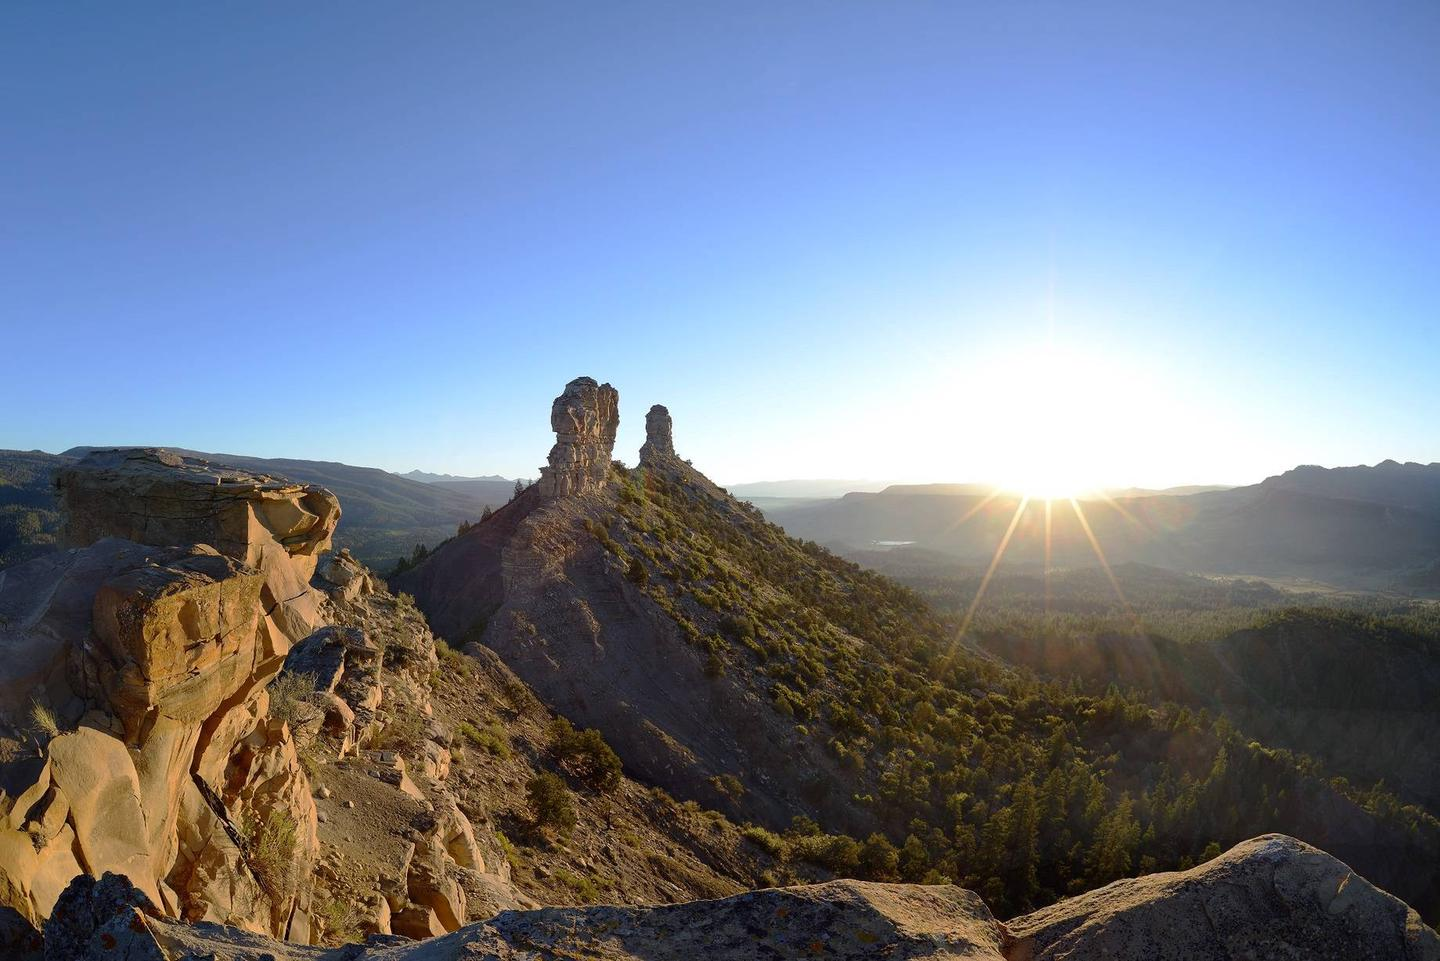 Archaeological ruins and artifacts, abundant wildlife, and its setting in the breathtaking San Juan National Forest make Chimney Rock a must-see.Watch the sunrise over the San Juan Mountains from on top of Chimney Rock mesa where the ancient Puebloans used to live over a 1,000 years ago.